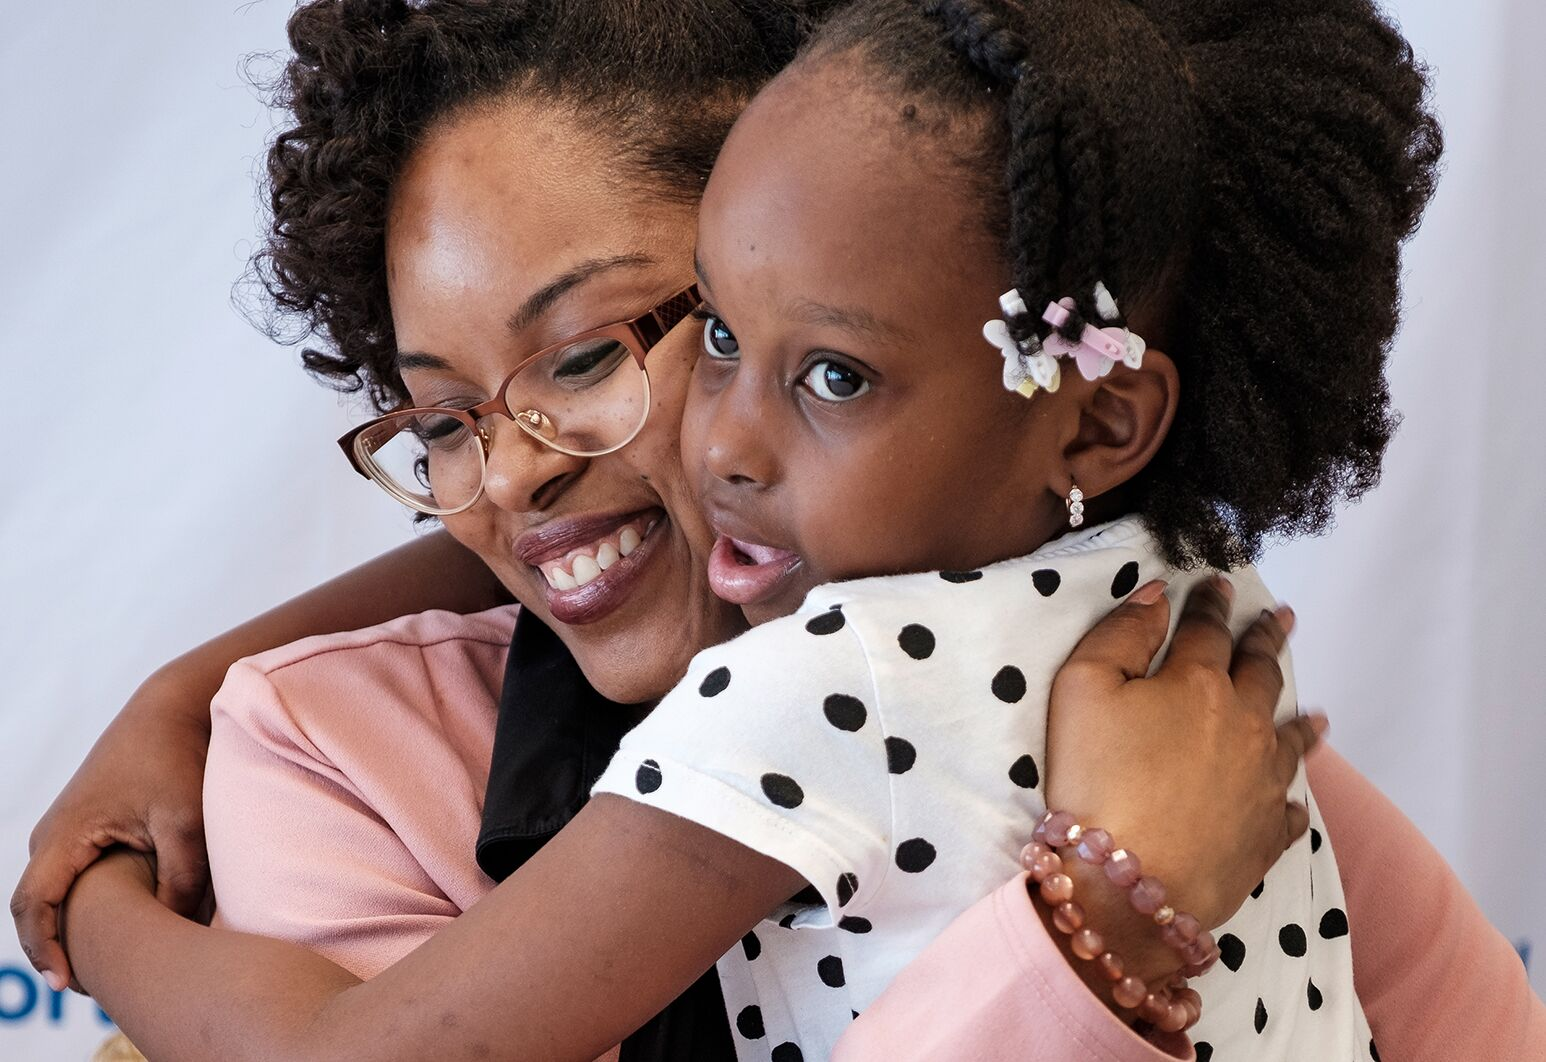 Northwell employee Dominique Strickland and her 4-year-old daughter.